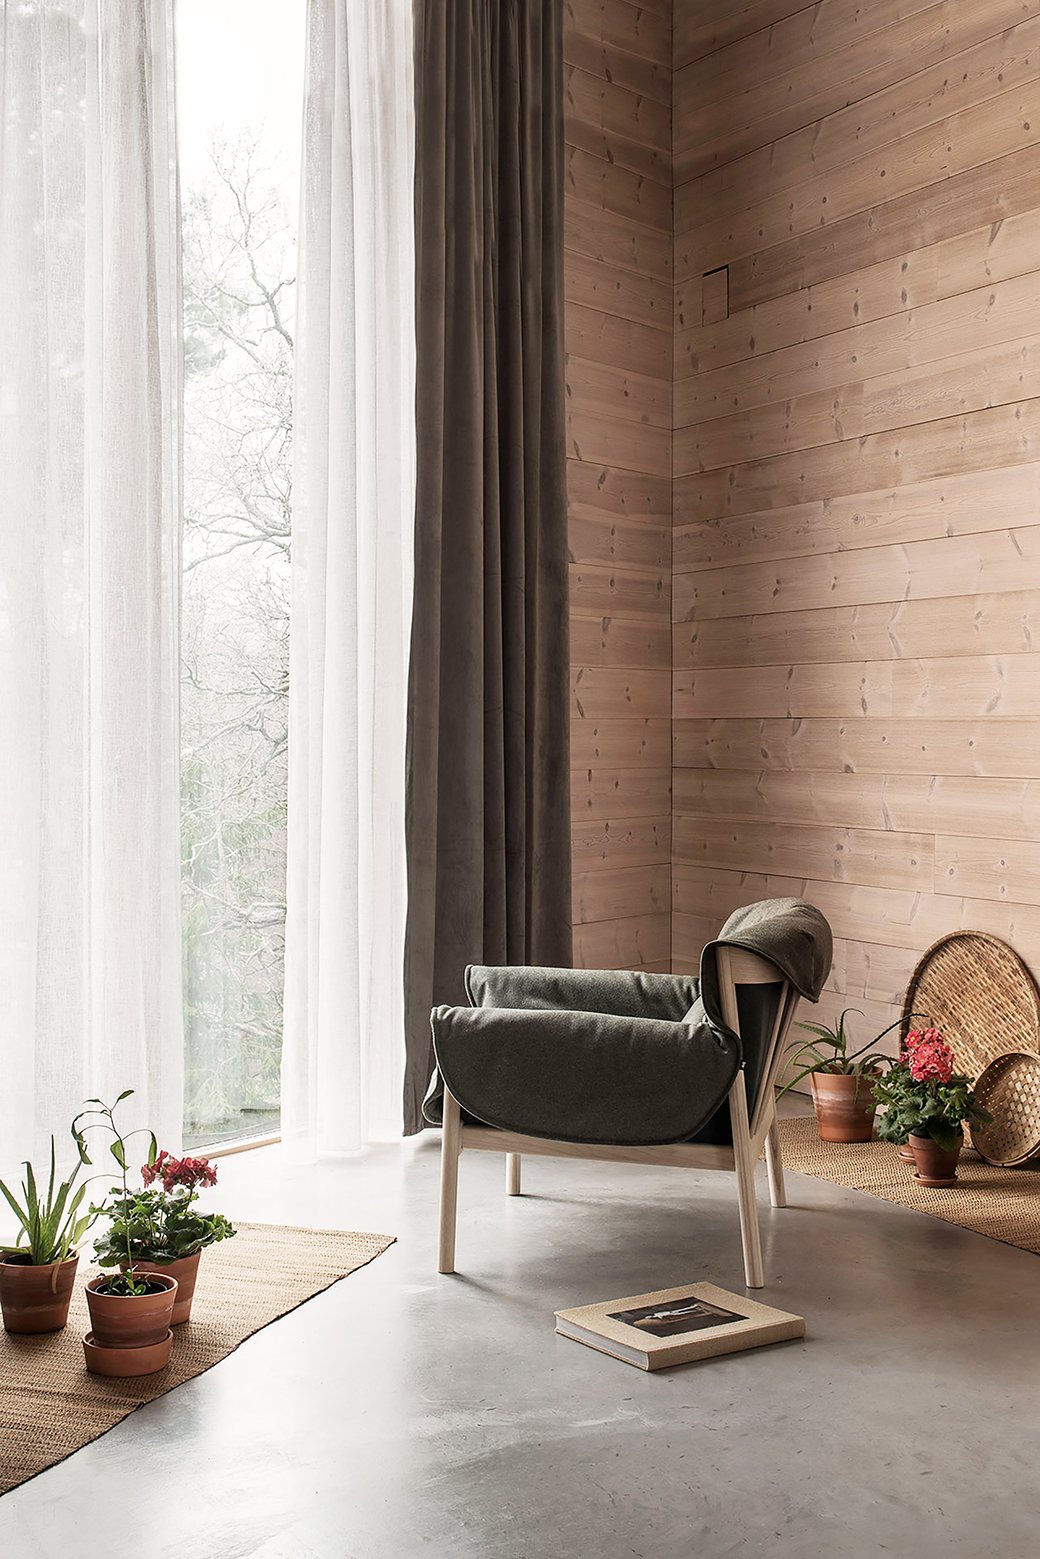 Agnes designed by Andreas Engesvik for Ire